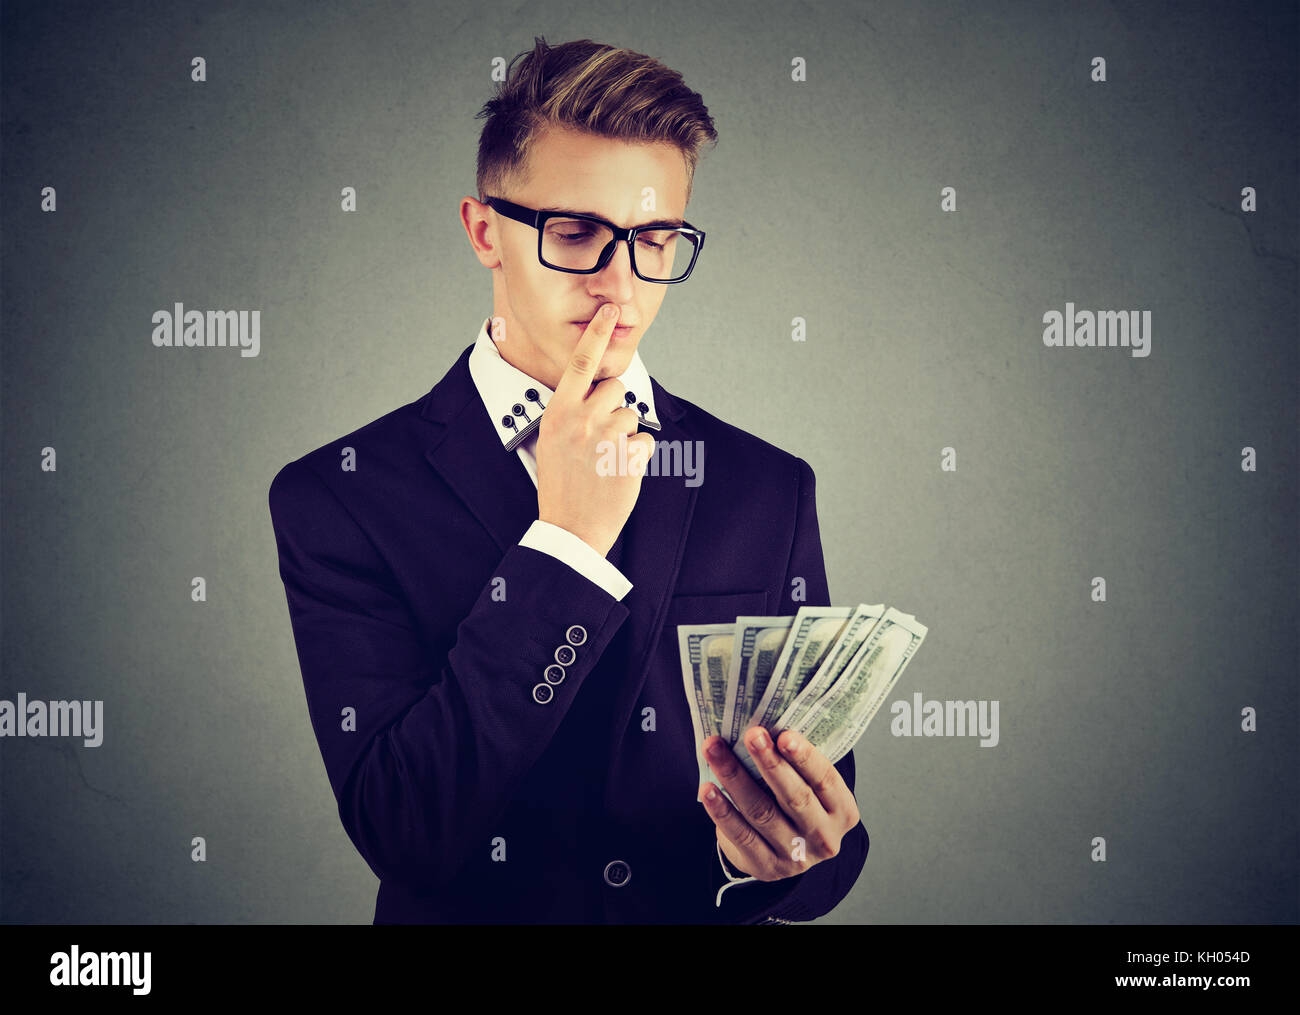 Ambitious young business man with money - Stock Image